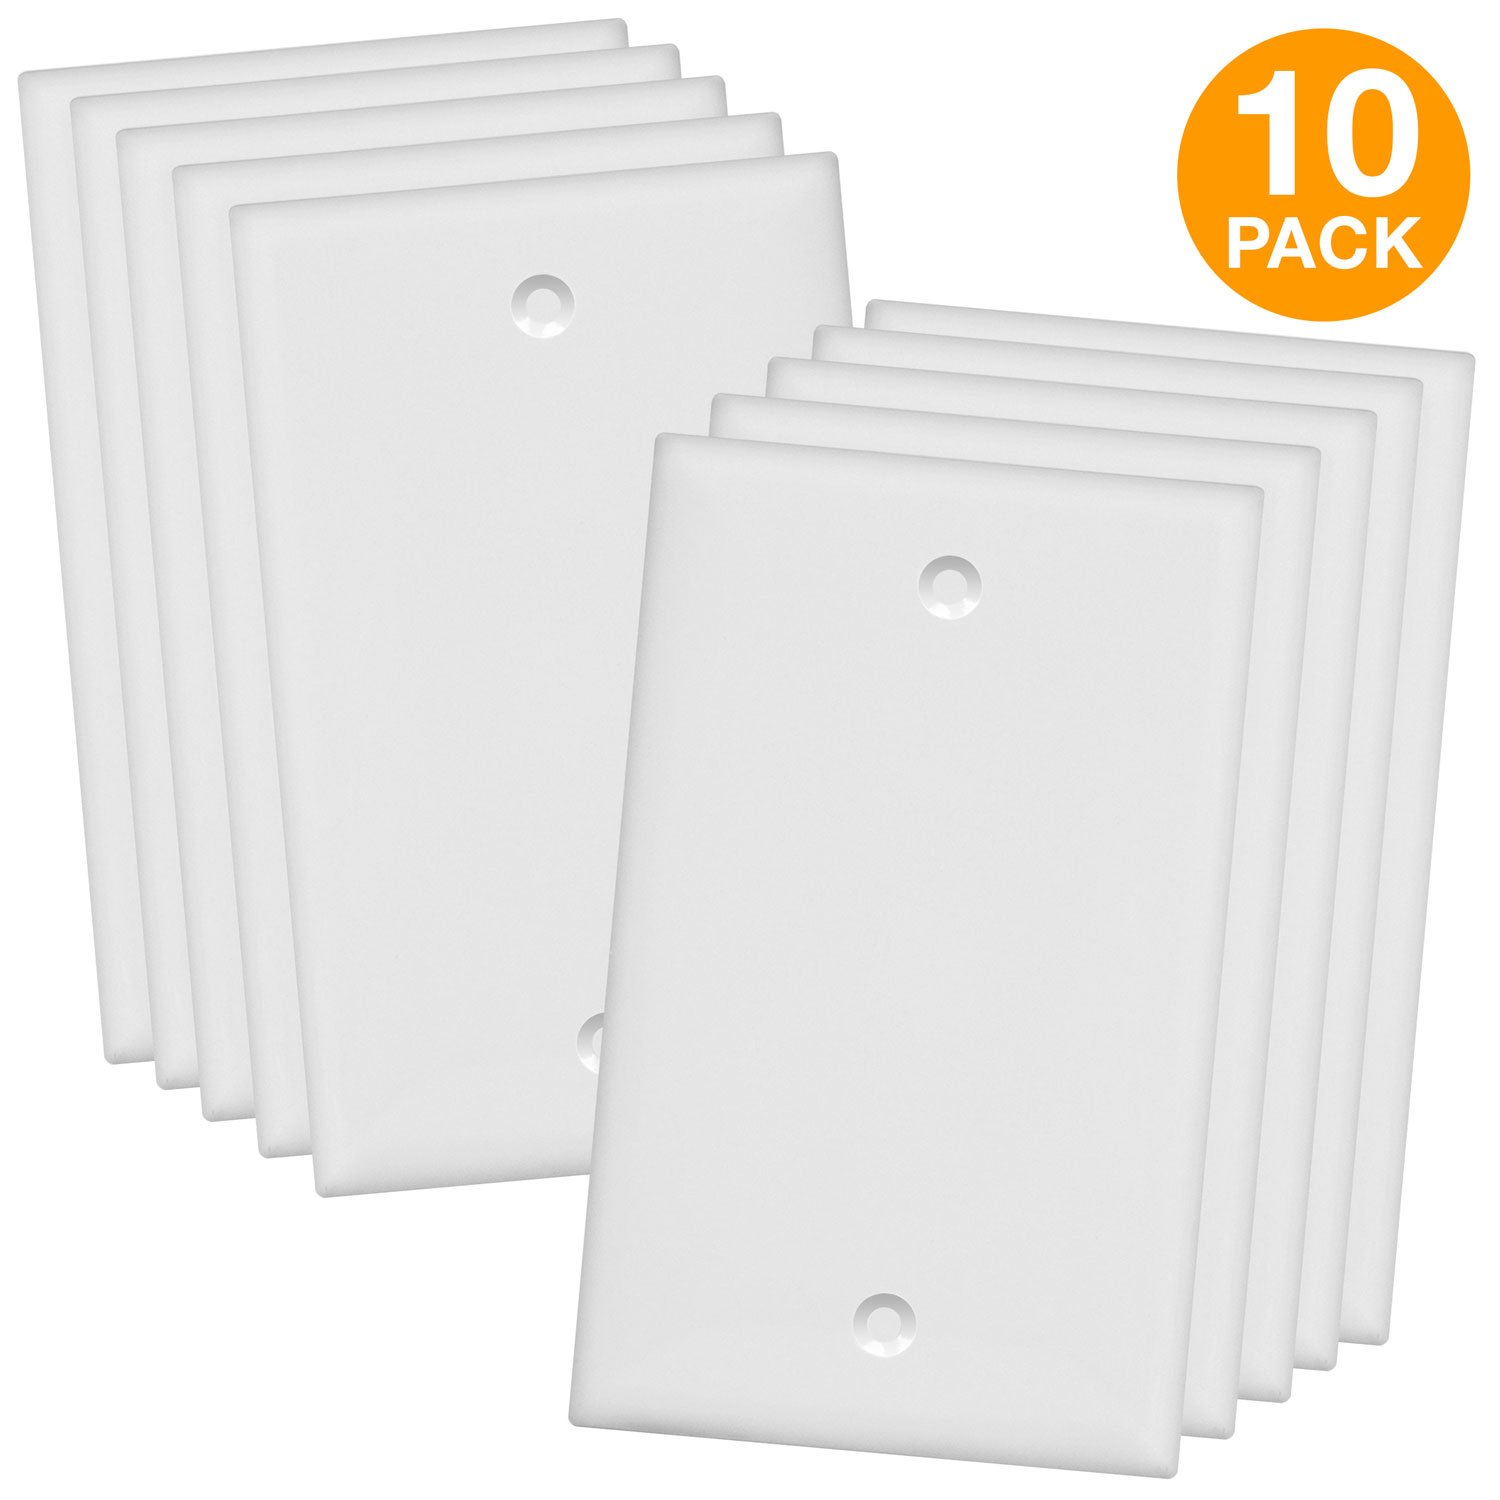 ENERLITES Blank Device Wall Plate, Size 1-Gang 4.50'' x 2.76'', Polycarbonate Thermoplastic, 8801-W-10PCS, White (10 Pack), 10 by ENERLITES